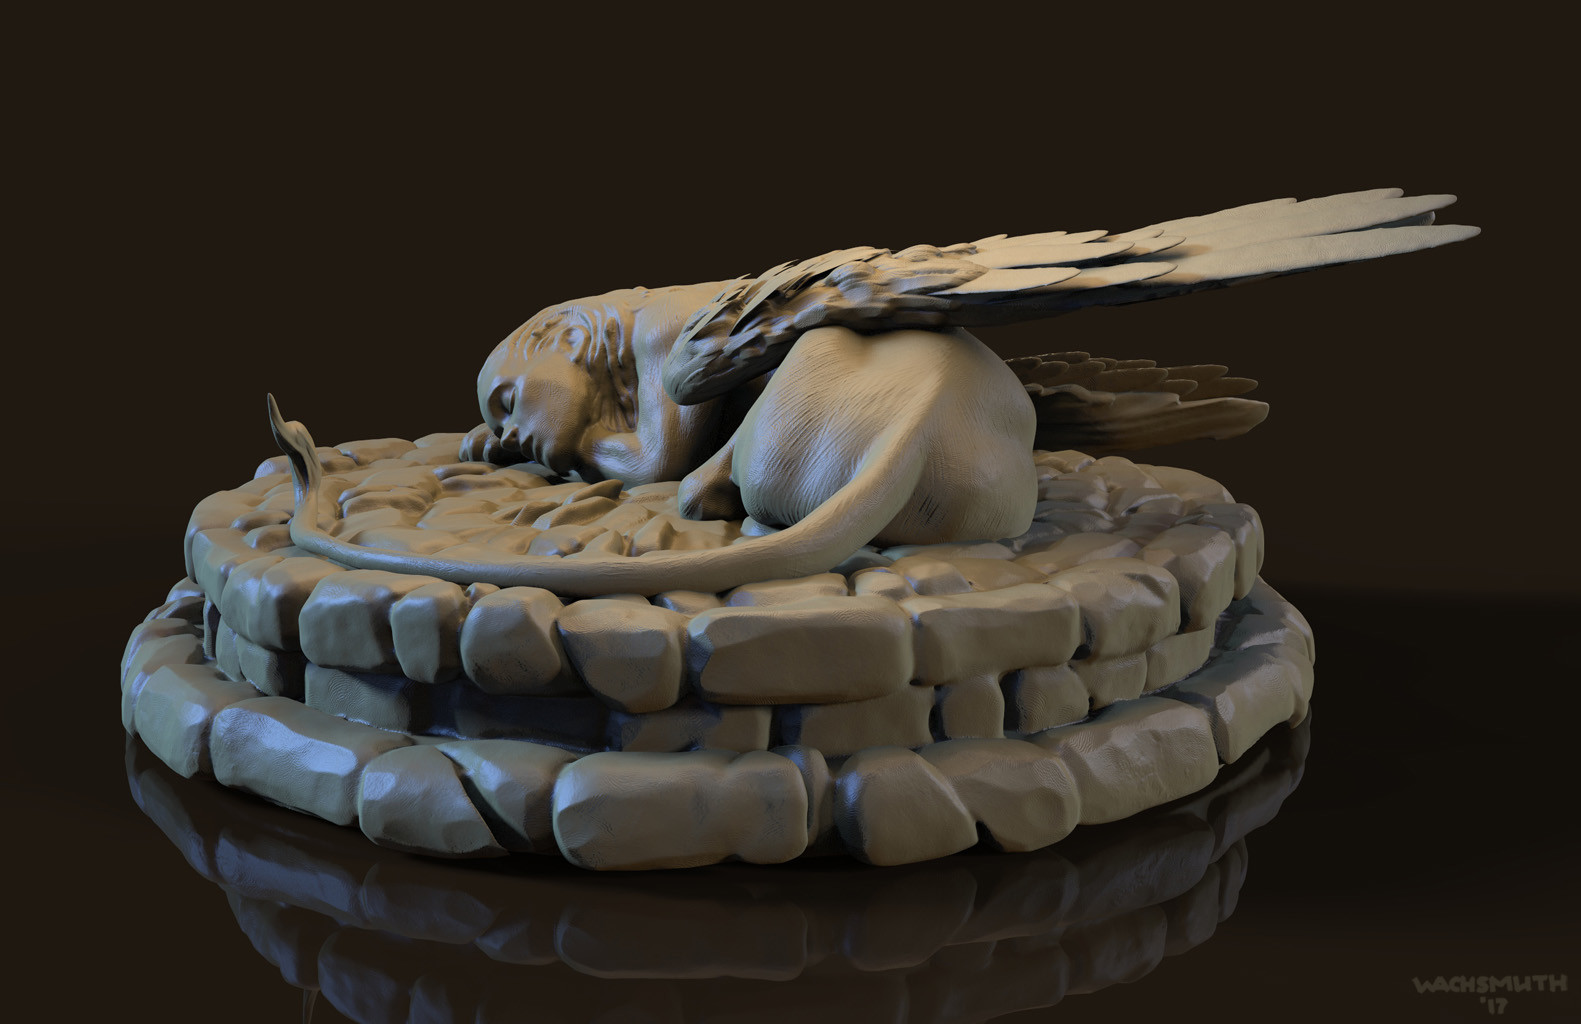 Dirk wachsmuth sphinx render 01 4web